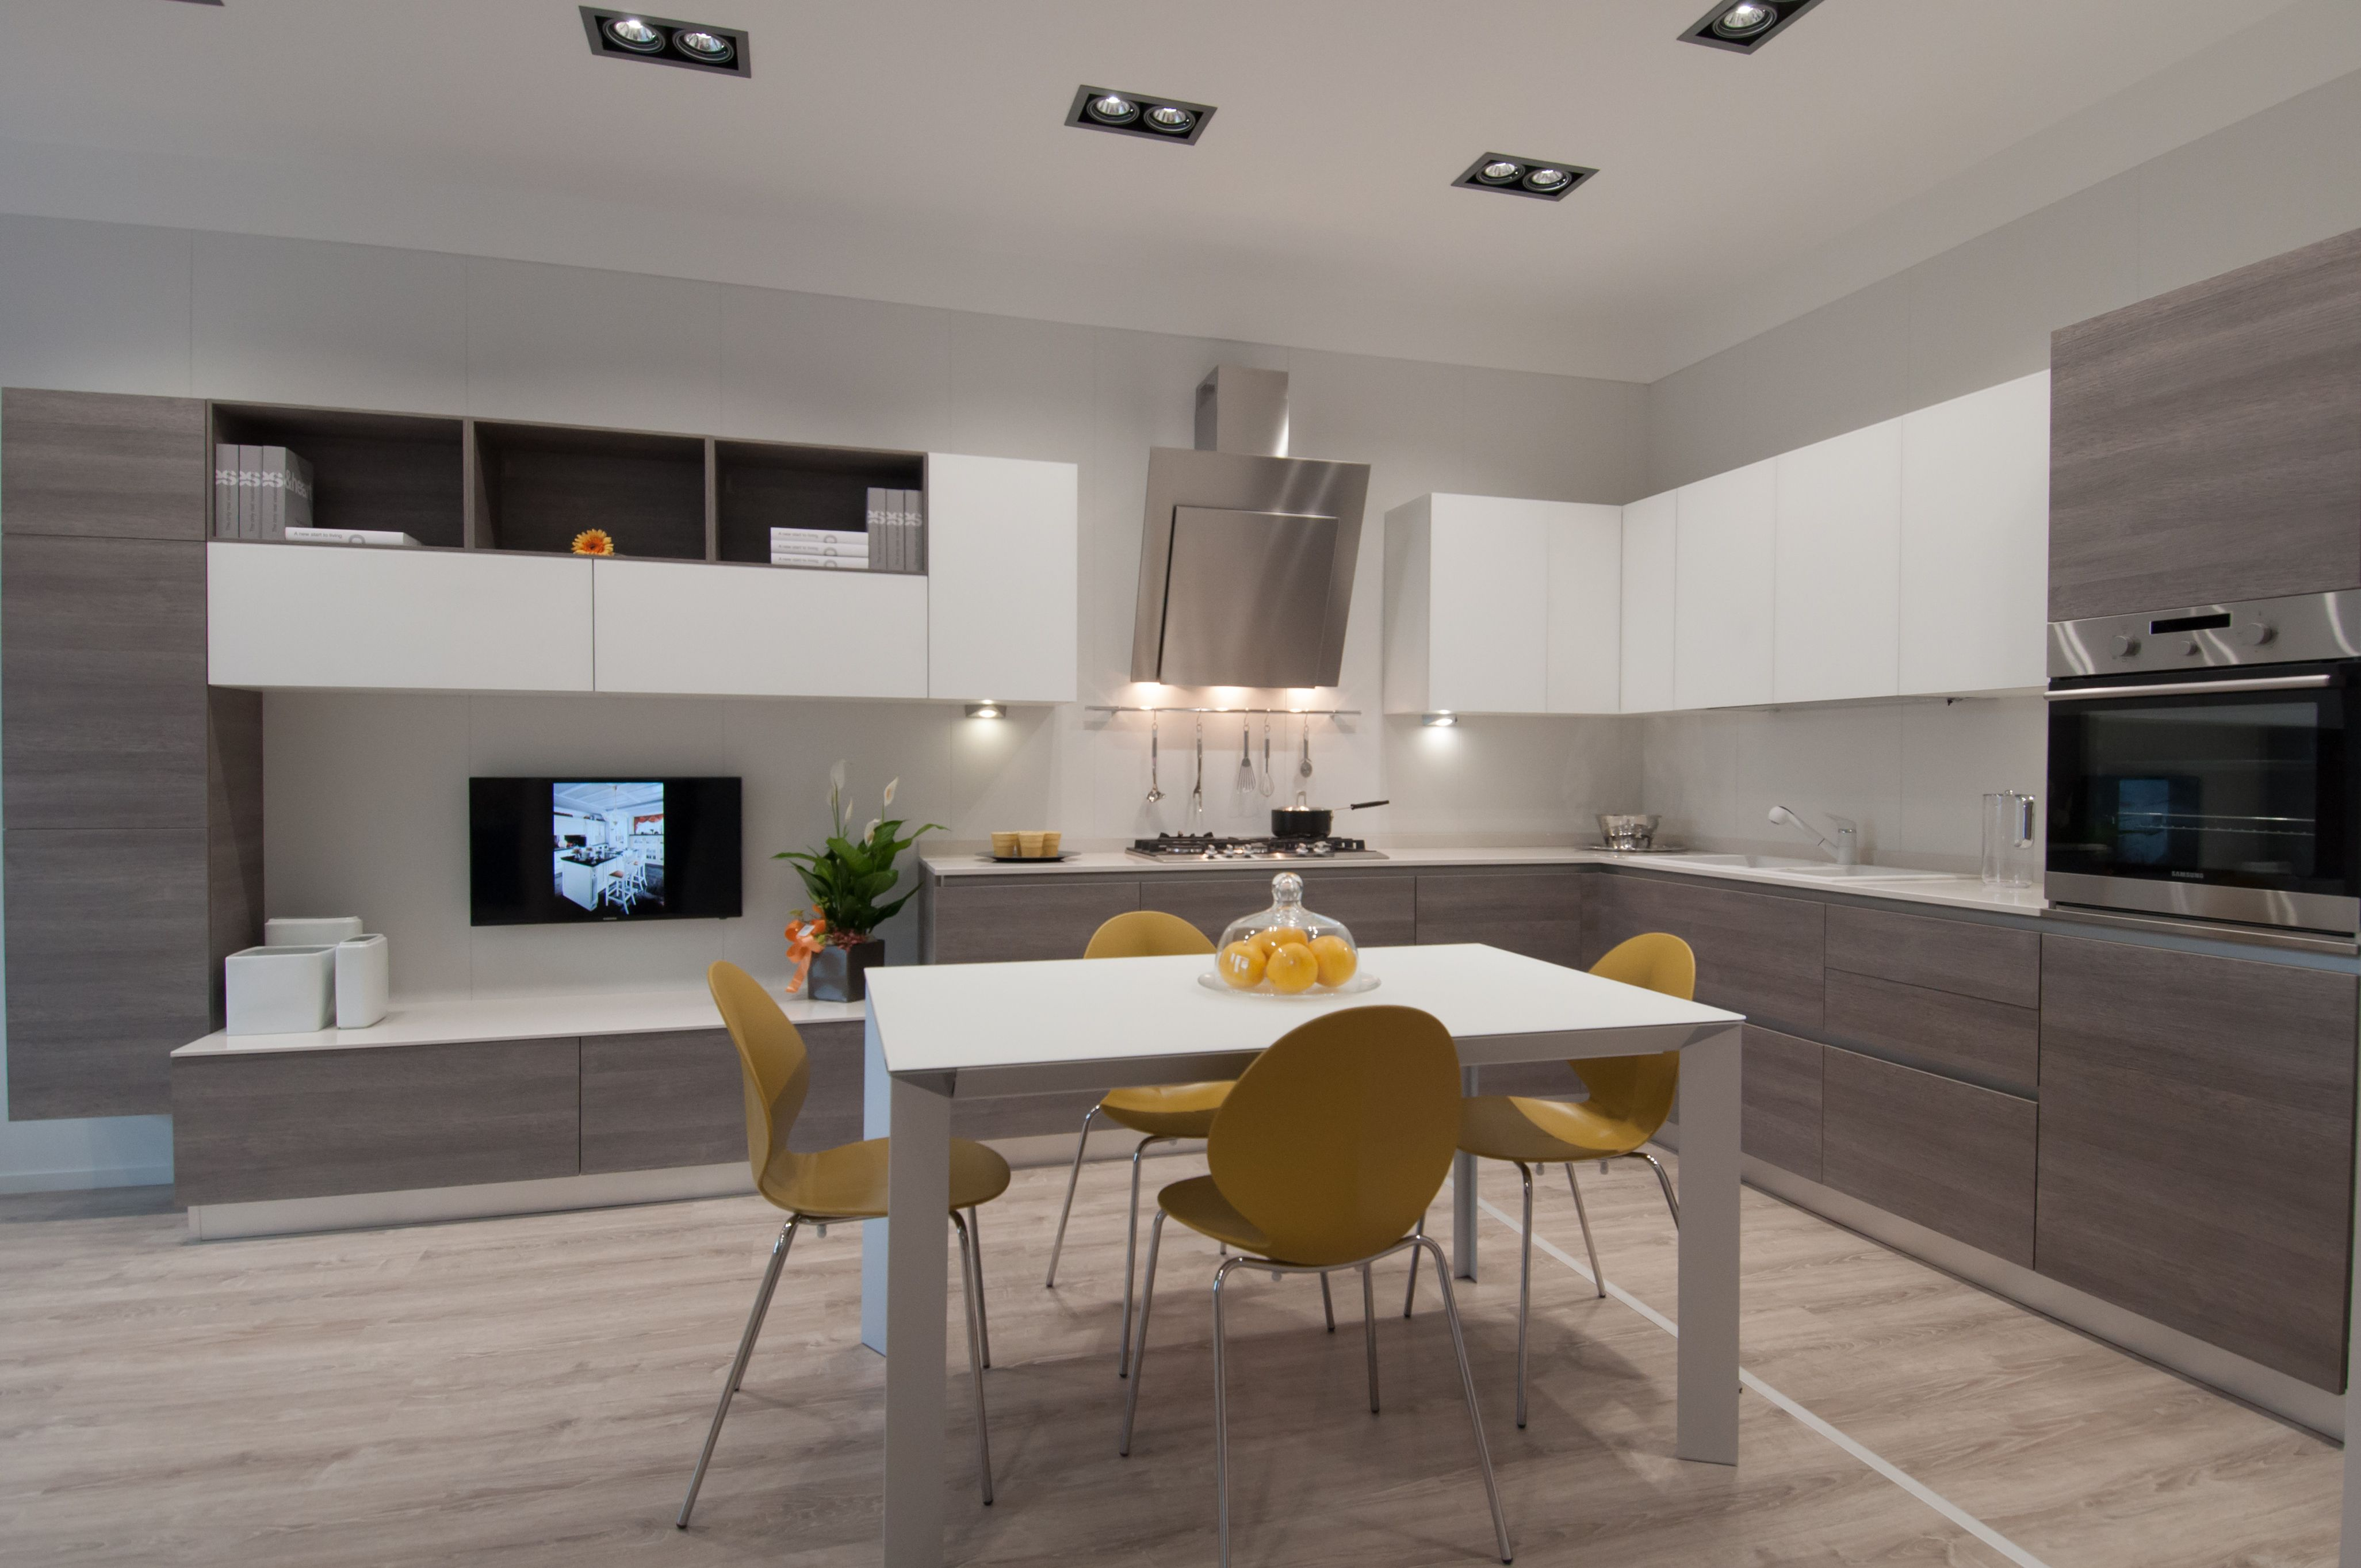 Awesome Cucina Scavolini Liberamente Images - Brentwoodseasidecabins ...